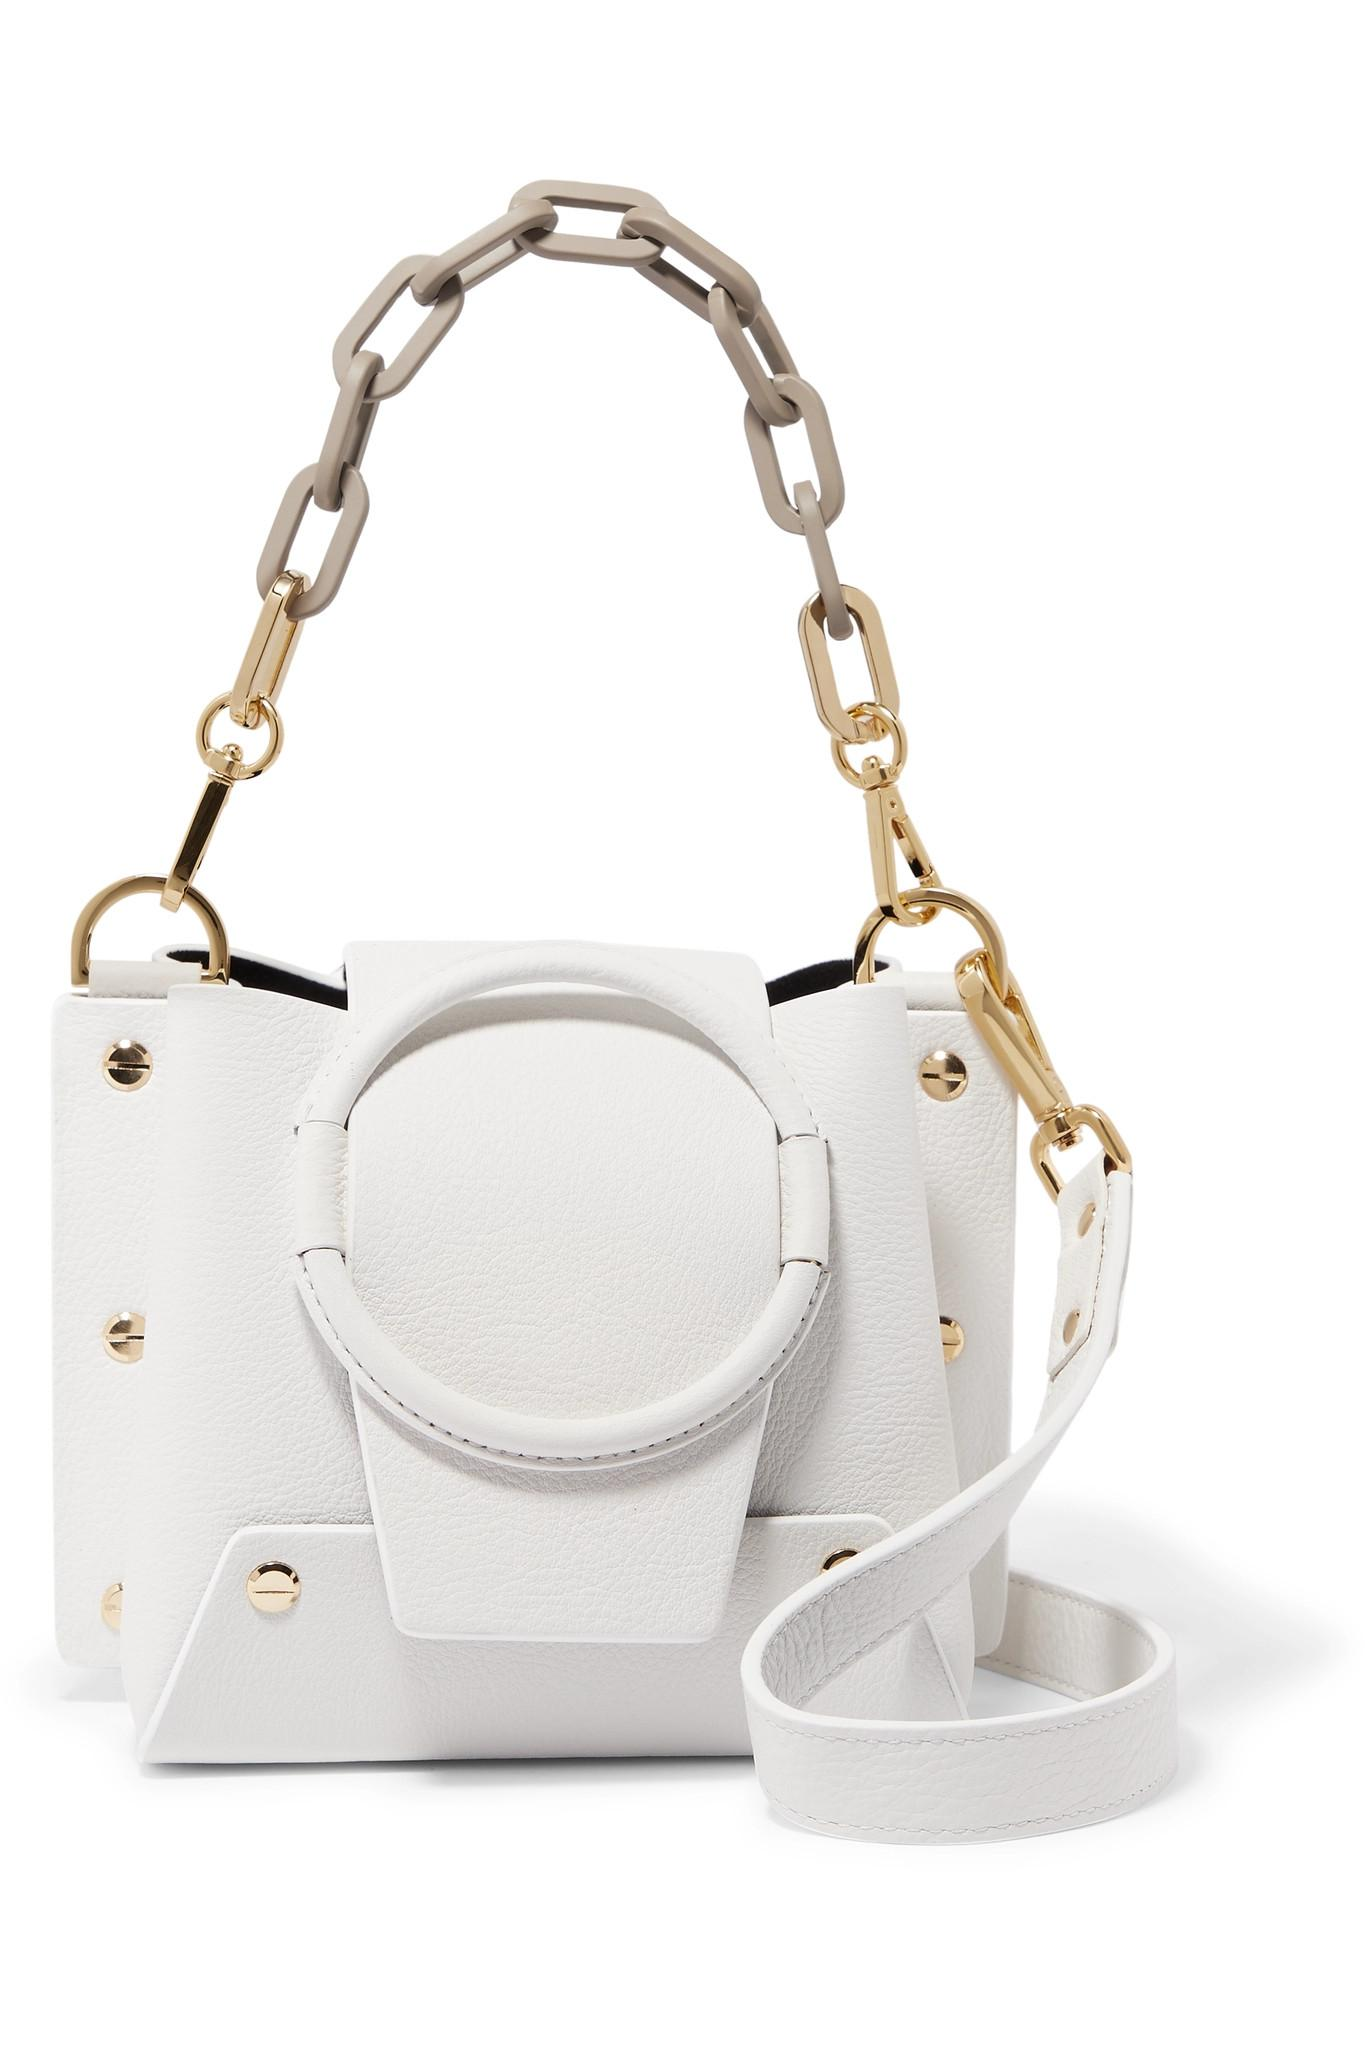 055bf5b381 Lyst - Yuzefi Delila Mini Textured-leather Shoulder Bag in White ...